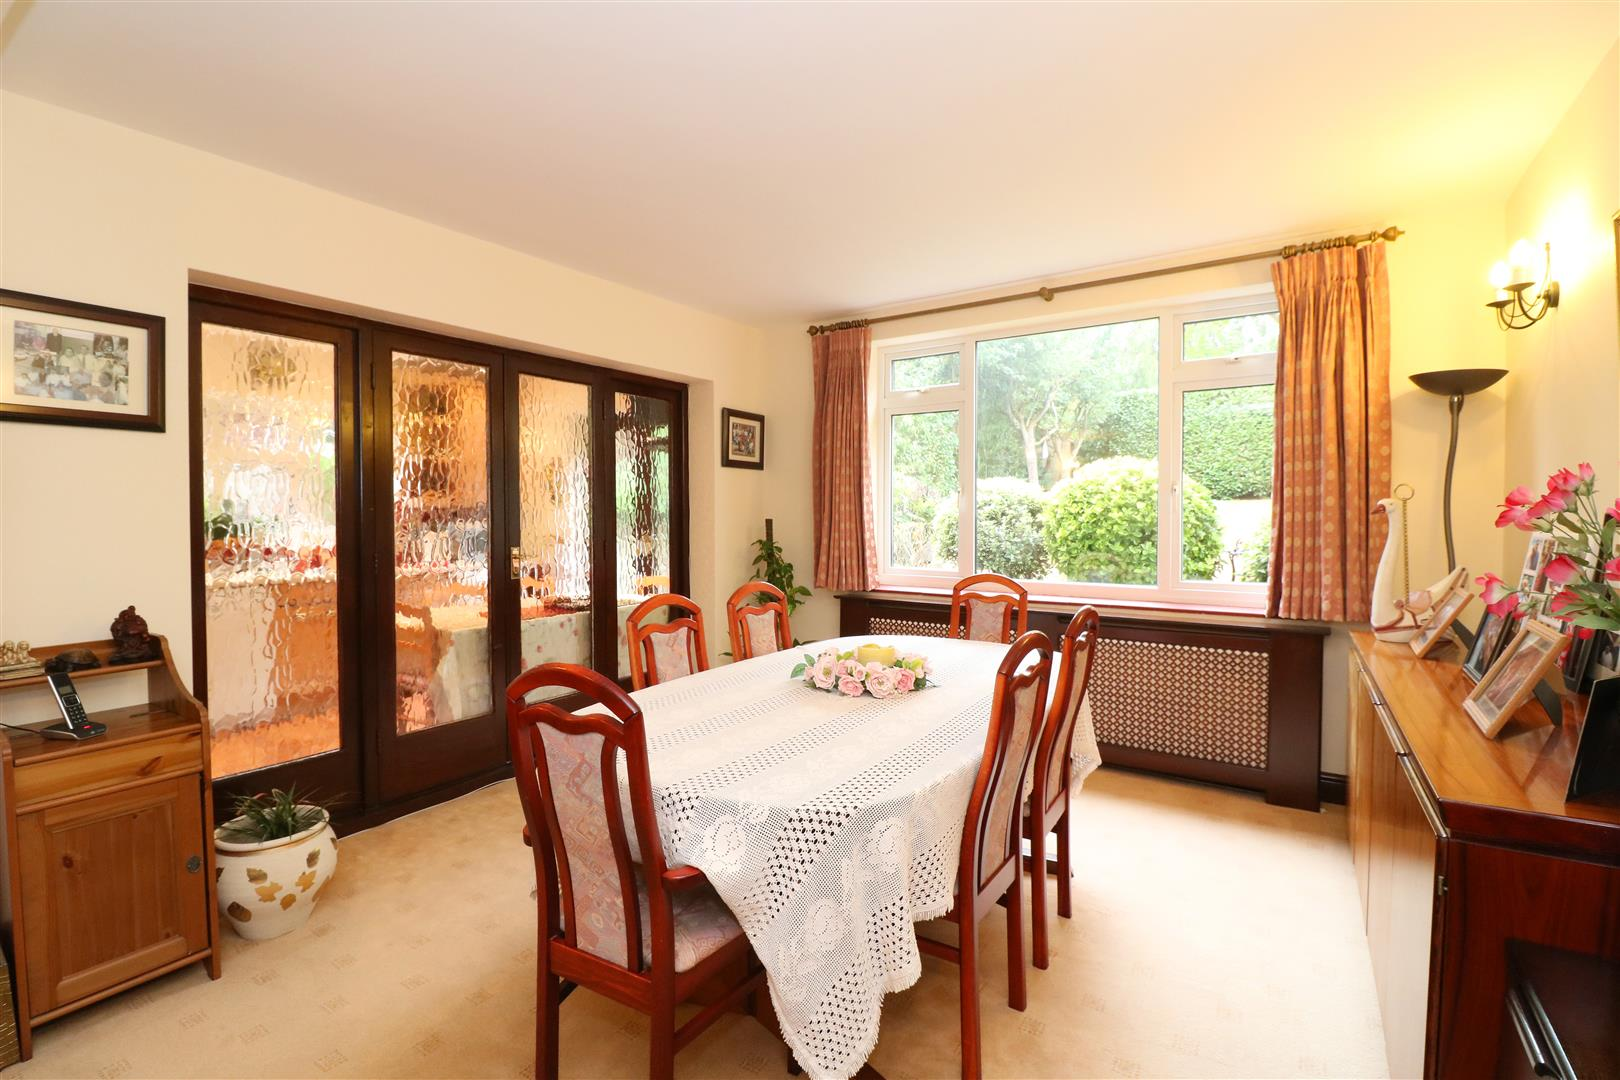 4 bed House for sale in Links Drive, Radlett - (Property Image 5)